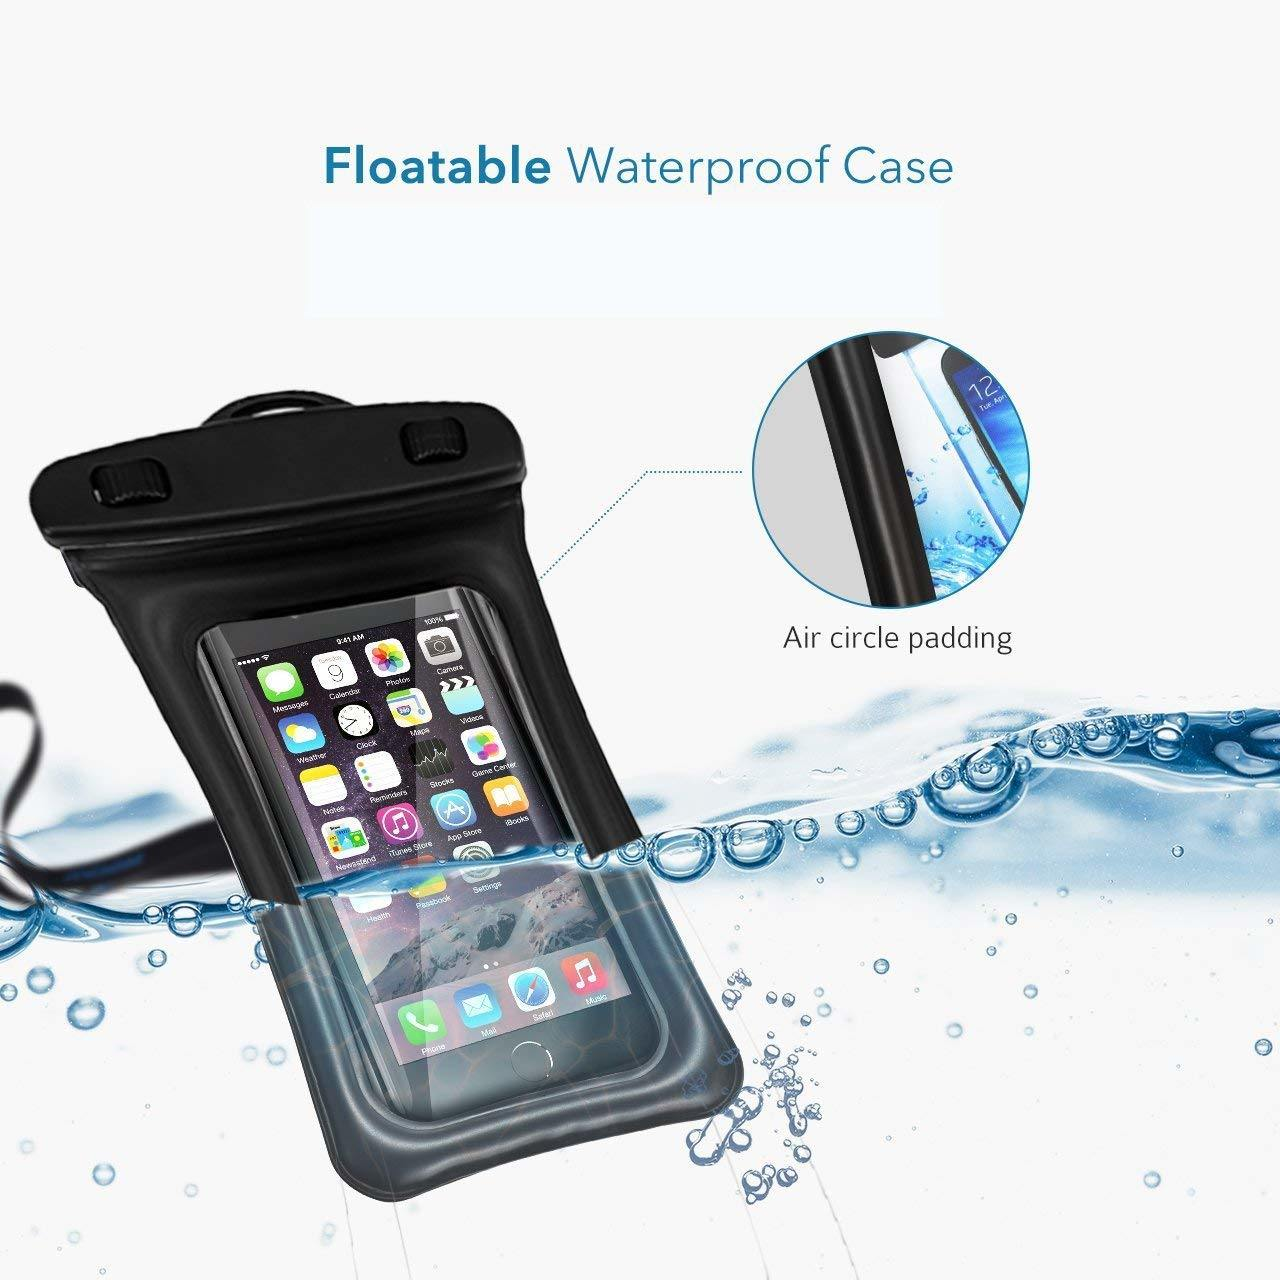 get cheap 3bb7d f6c3e [Hot Item] Waterproof Phone Pouch, Floating Waterproof Case Waterproof  Phone Case Available TPU Clear Dry Bag for iPhone X/Xs/Xs Max/Xr/8/8plus/  ...